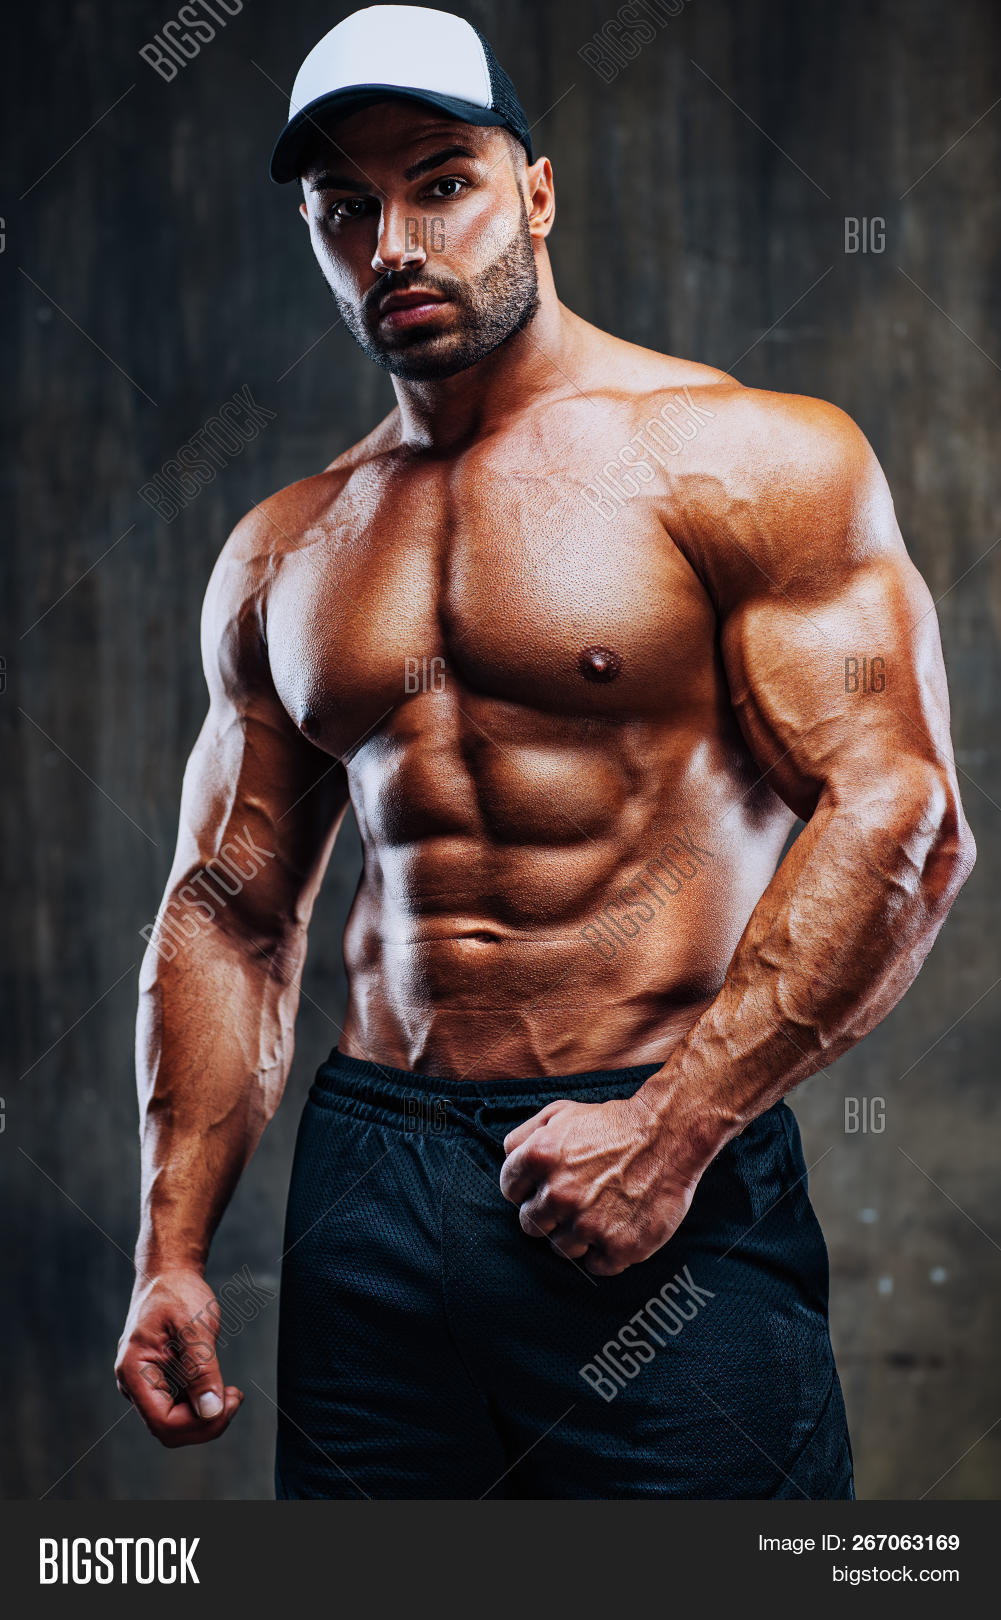 Young Strong Man Image & Photo Free Trial   Bigstock